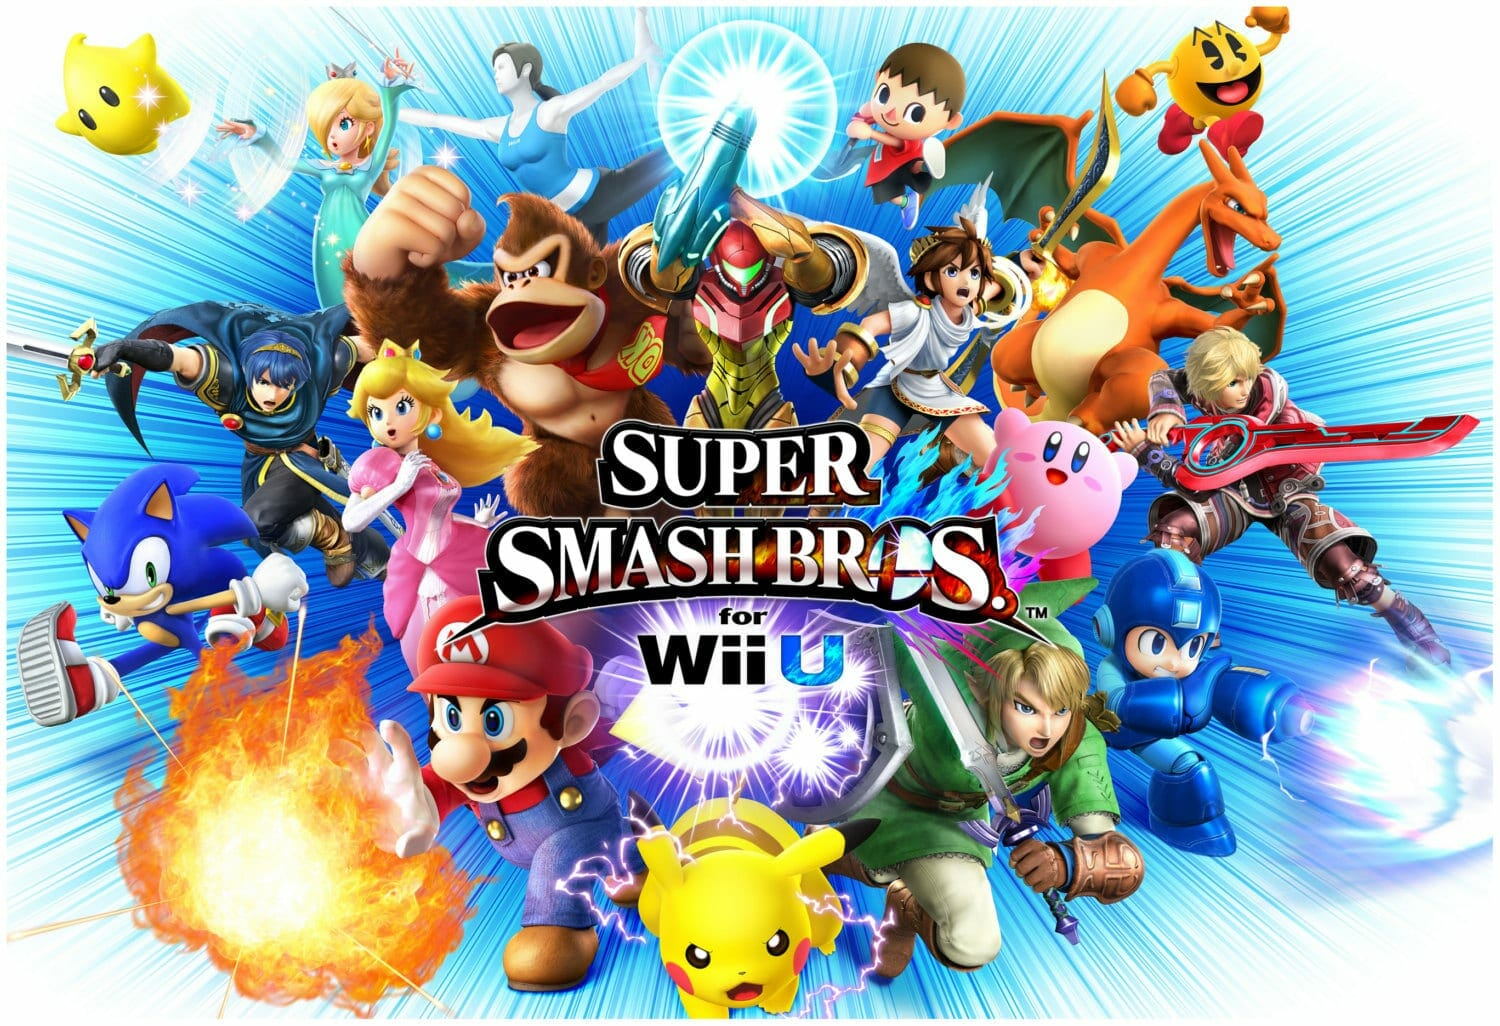 Smash - Best Wii U Cemu Games to play on PC [Wii U Emulator]